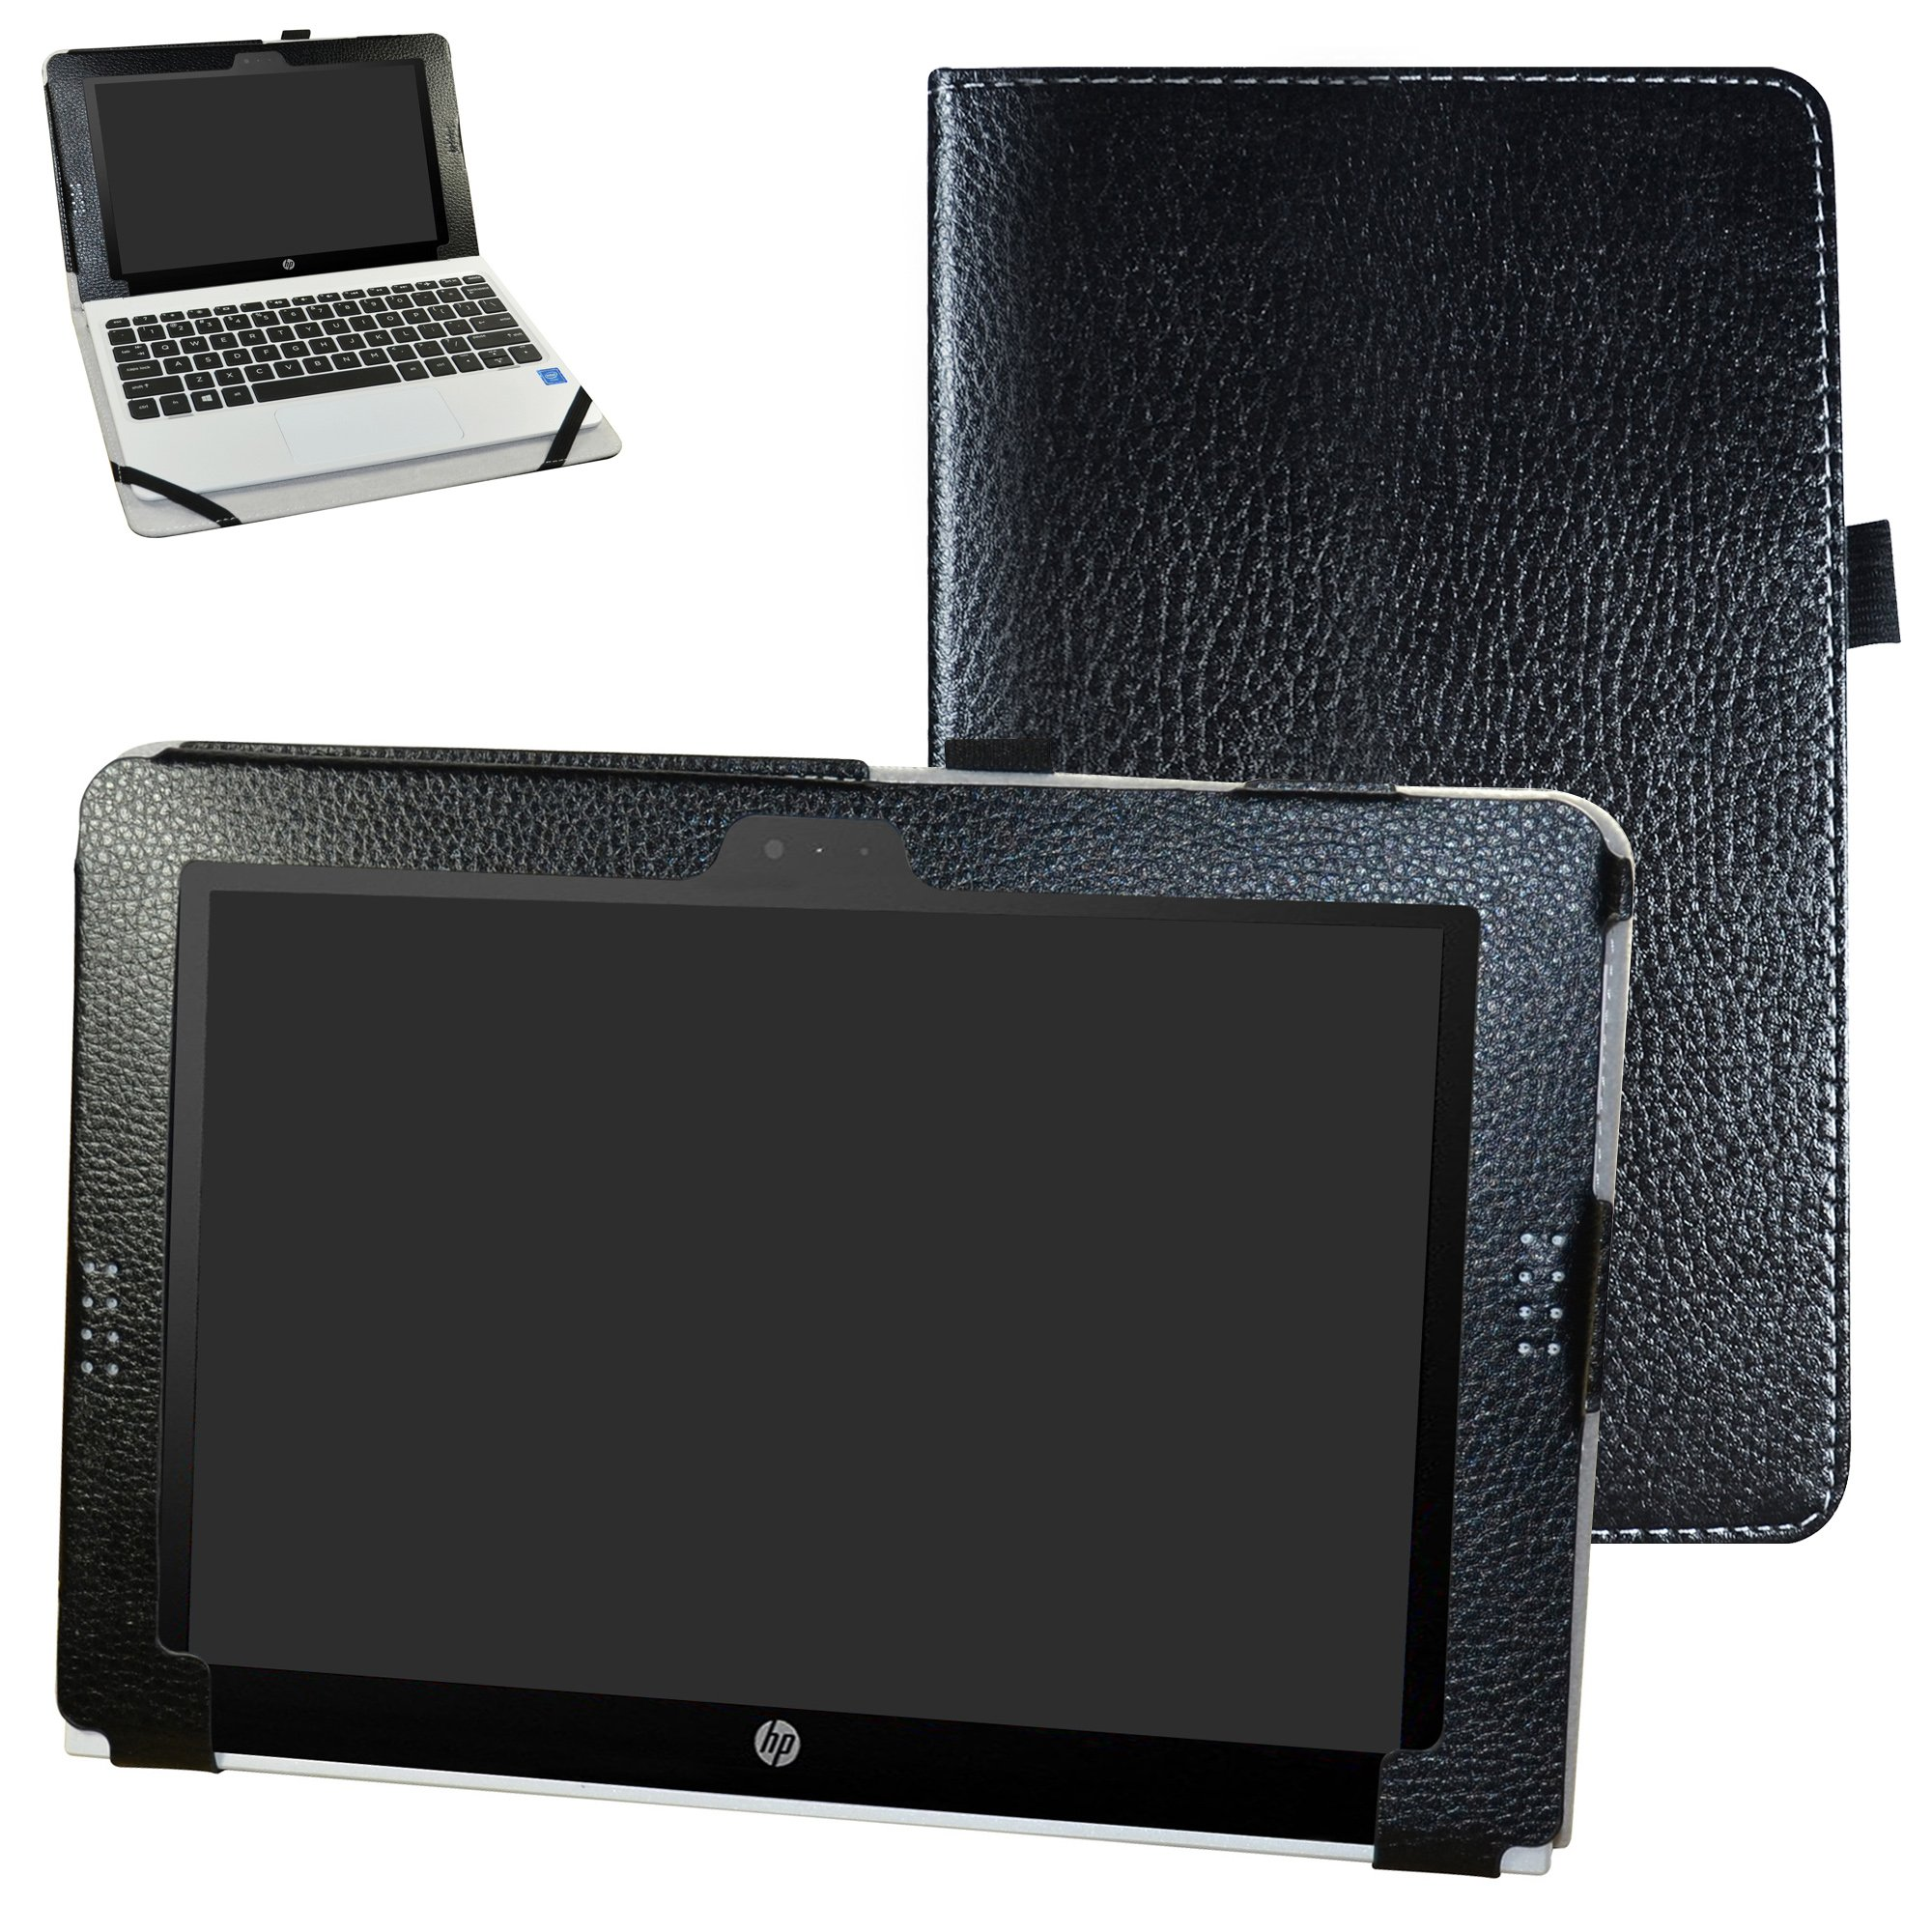 HP Pavilion x2 10 / HP x2 210 G1 Case,Mama Mouth PU Leather Folio Stand Cover for 10.1'' HP Pavilion X2 10-n113dx n114dx n123dx n124dx n013dx / HP x2 210 G1 Detachable 2-in-1 Laptop/Tablet,Black